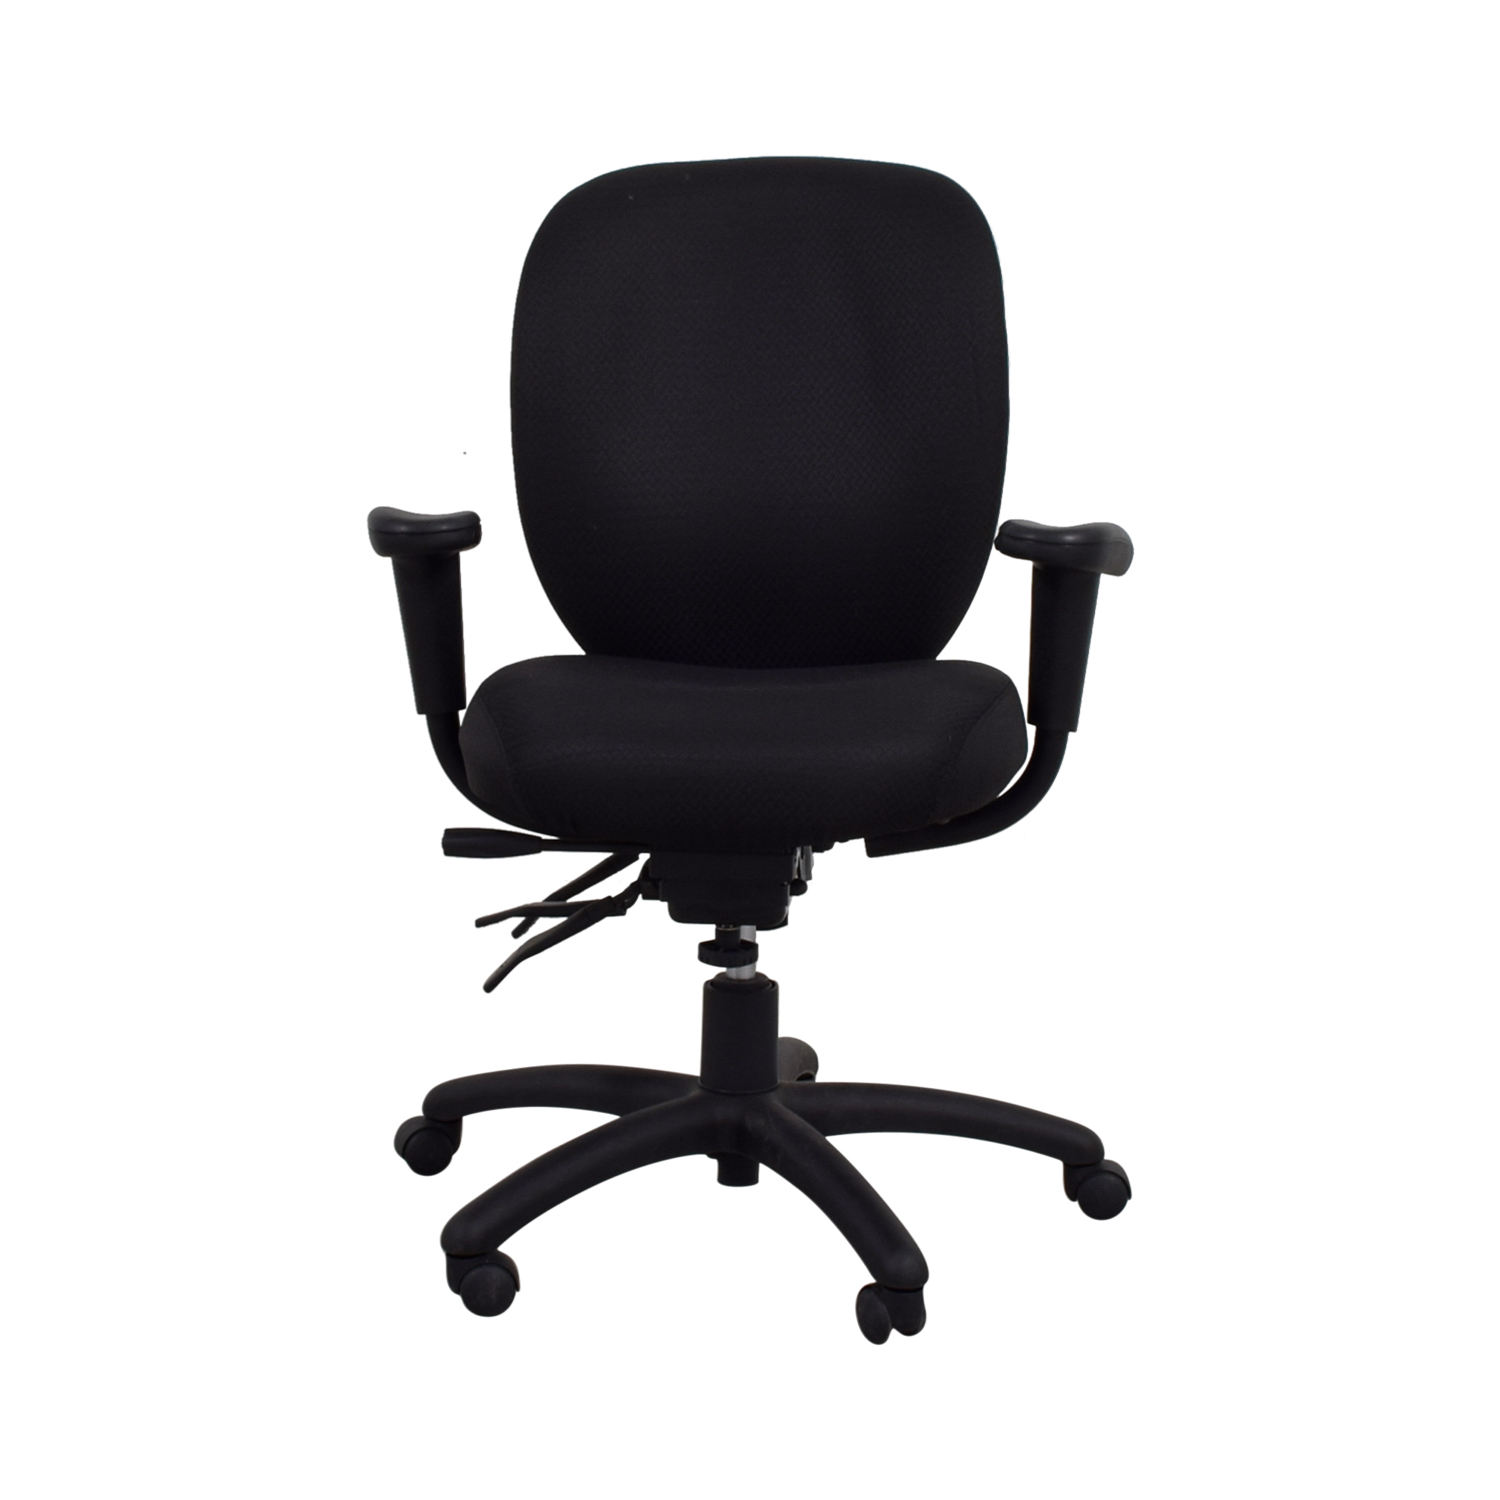 Offices to Go Offices to Go Black Quilt Office Chair discount